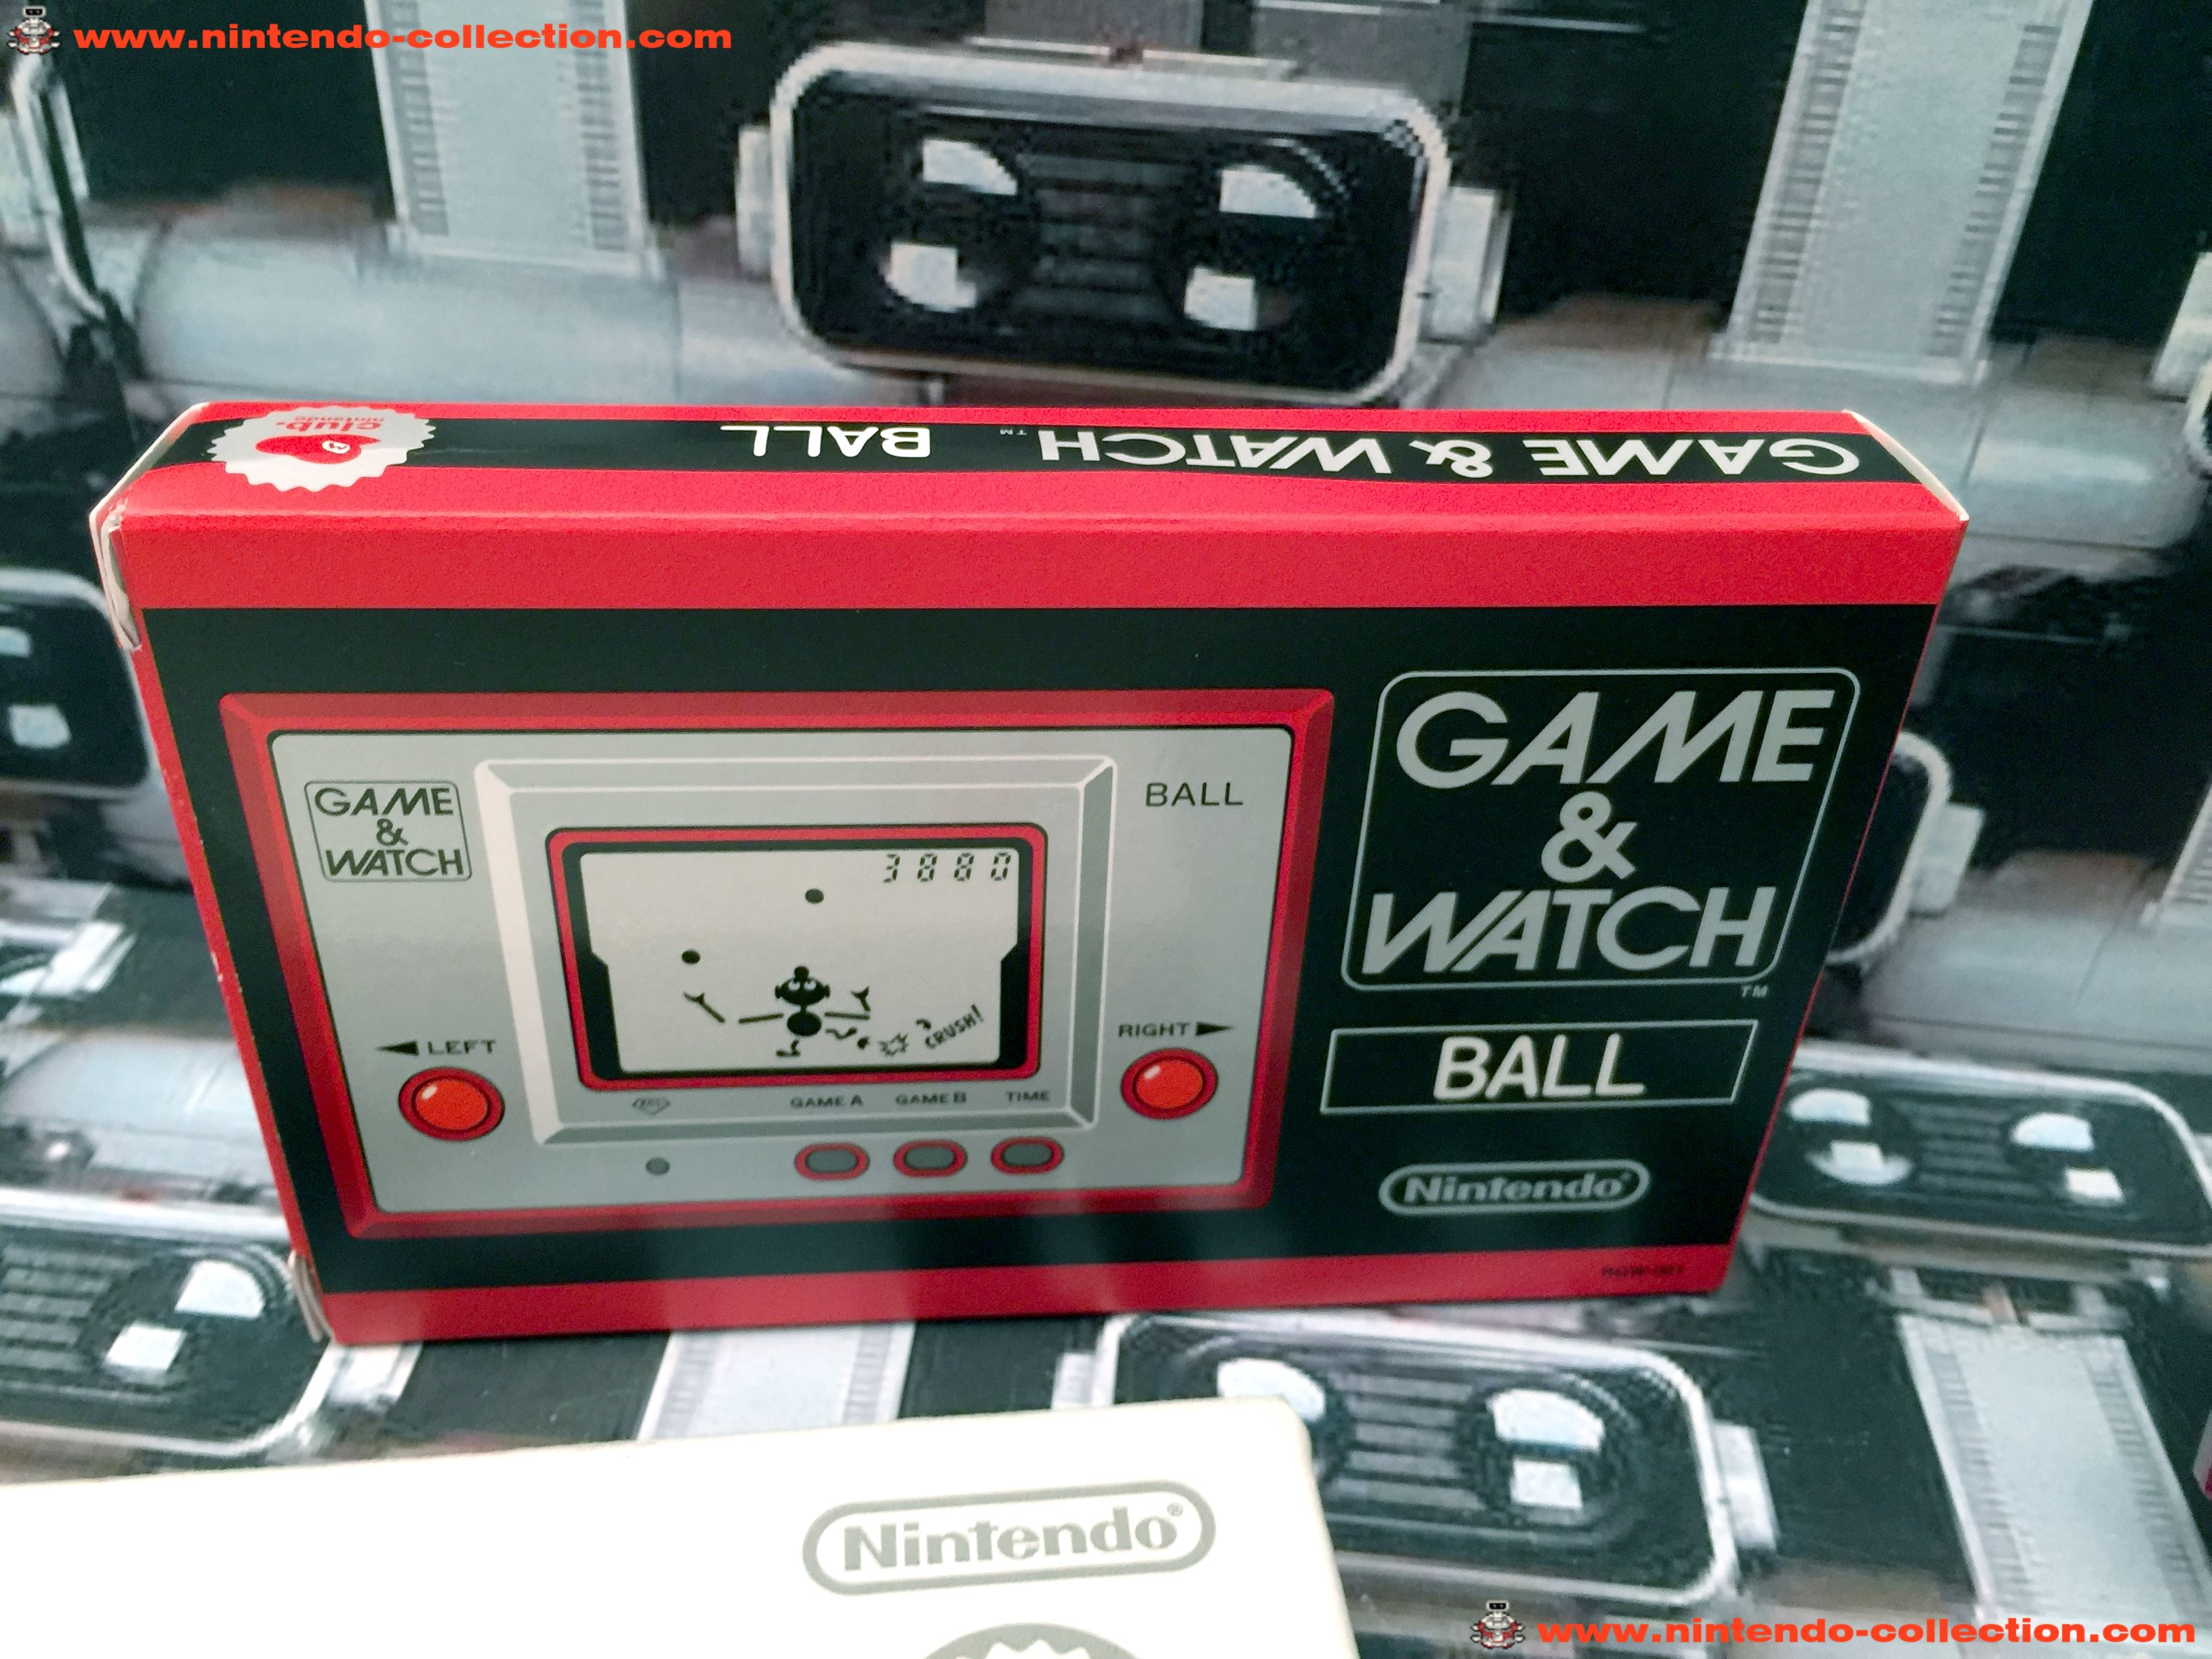 www.nintendo-collection.com - Game & Watch Silver Series Ball Club Nintendo 2009 Japan Japon - 04